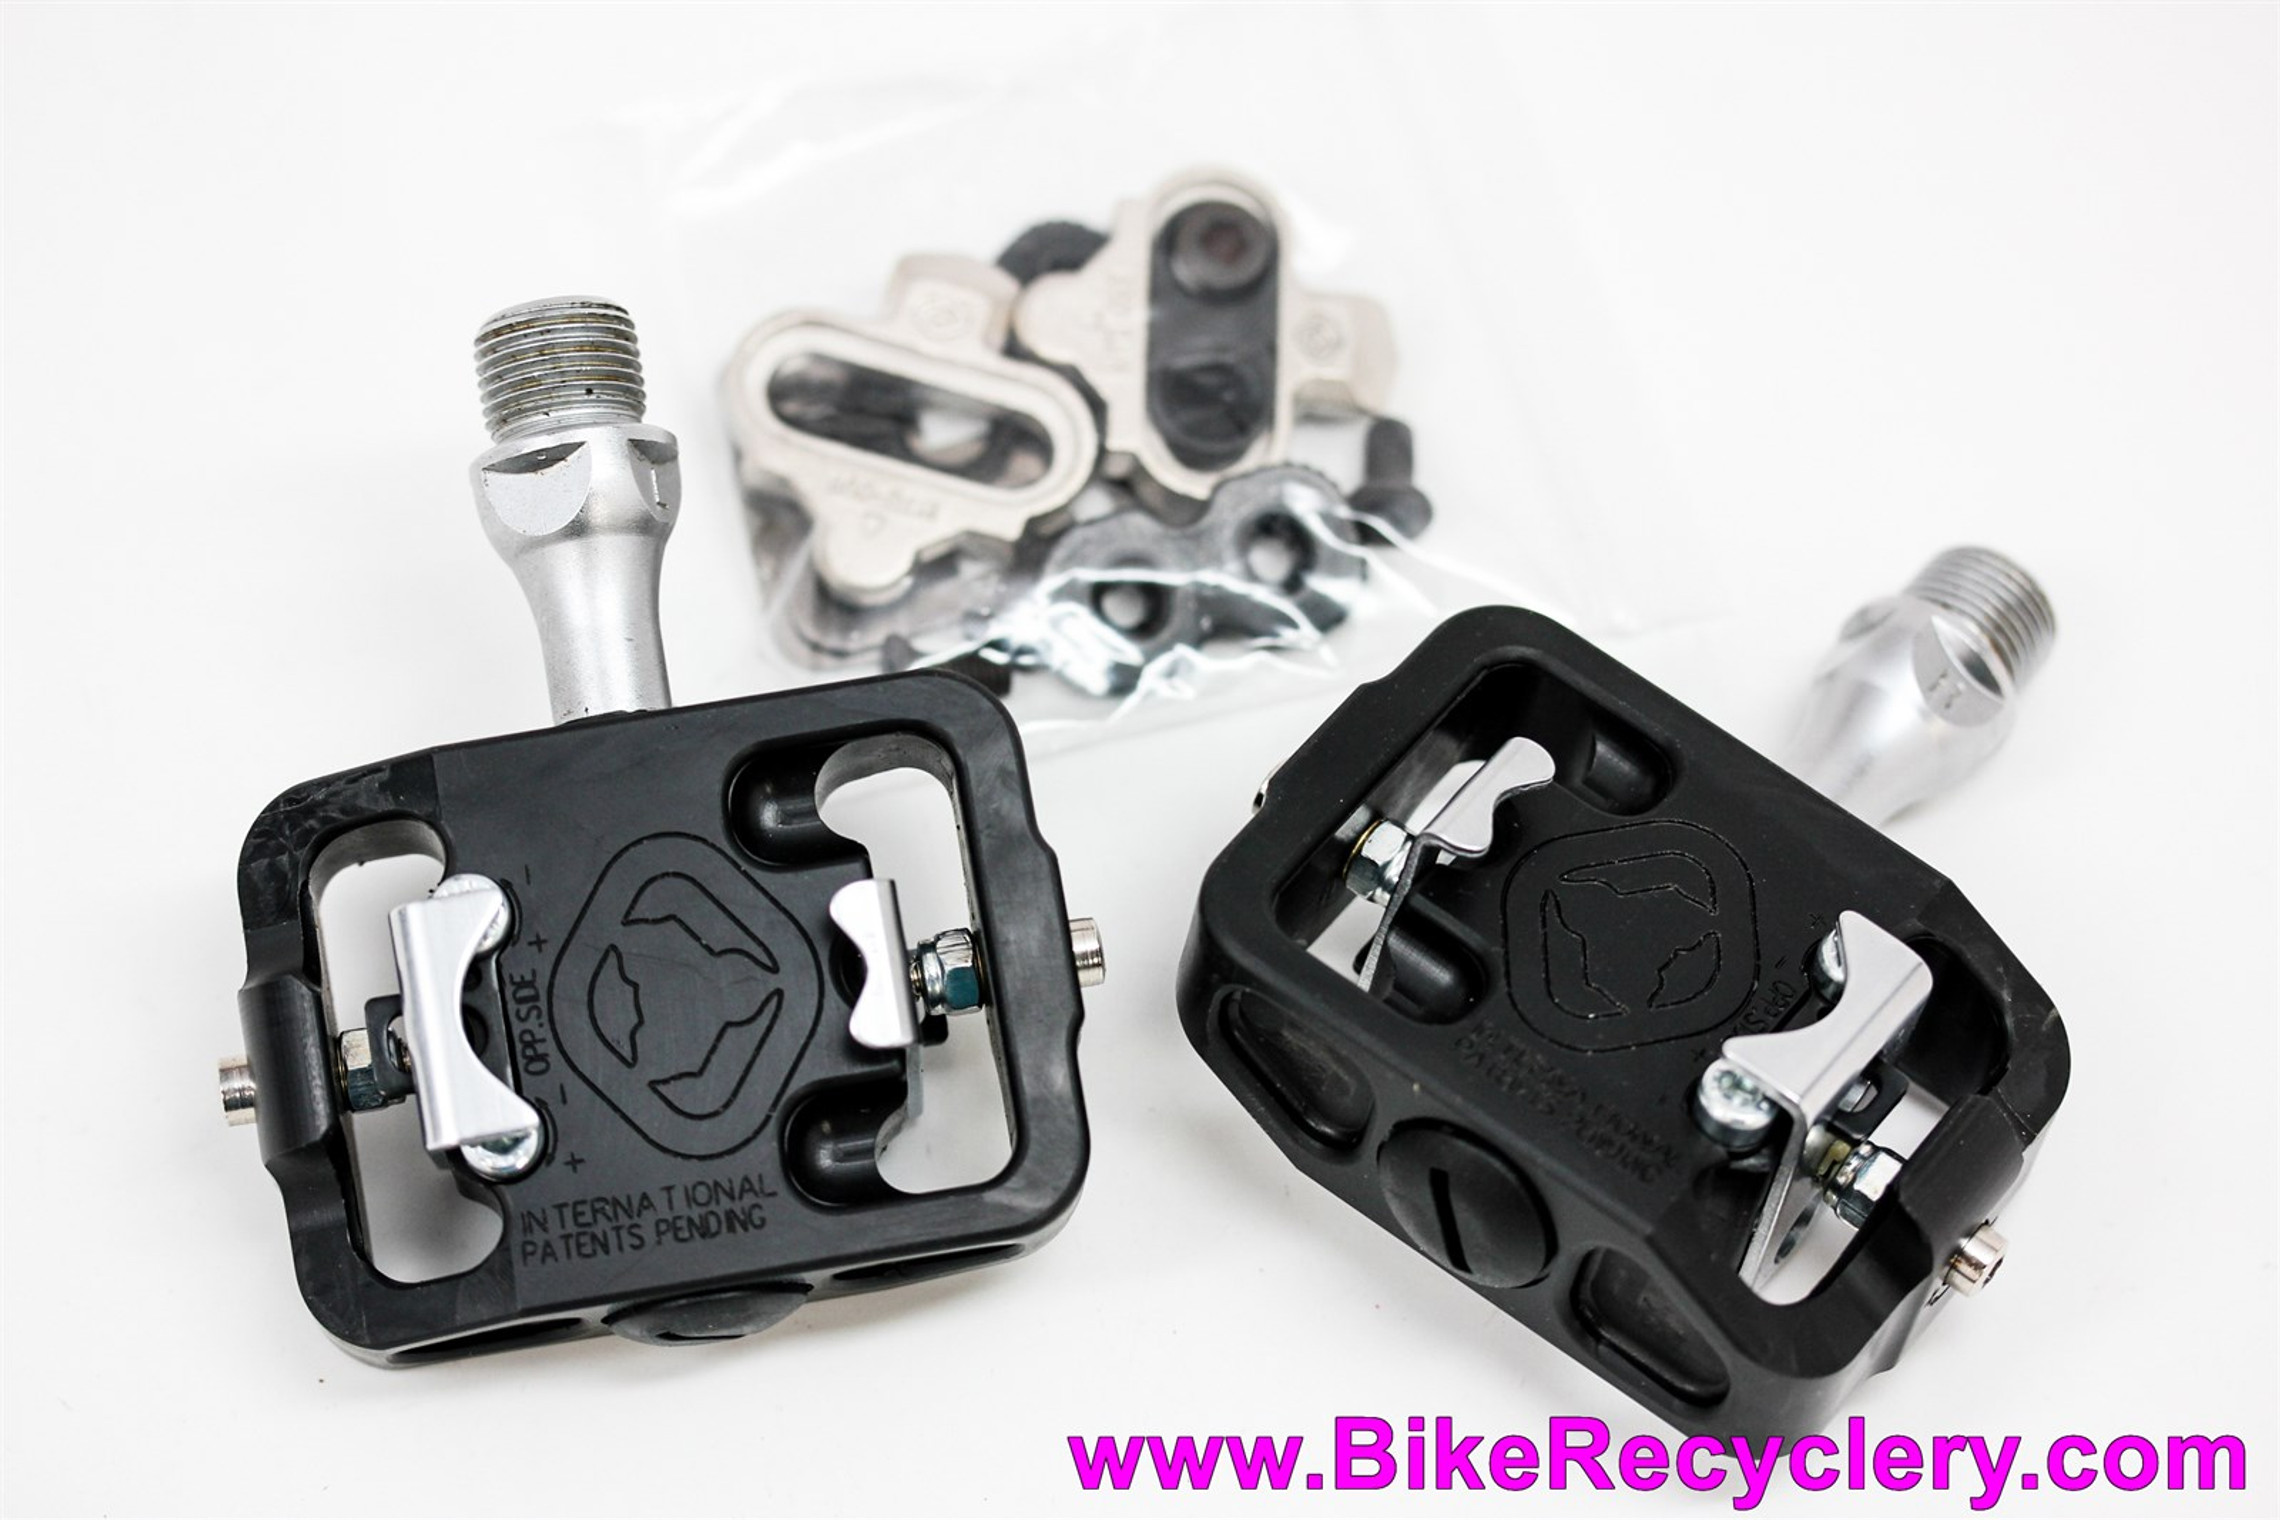 NOS WTB Stealth MP250 Clipless Pedals & Cleats: Early USA Built Version! - SPD Compatible - Thermoplastic! 260g - Rare Vintage Restoration Goodies